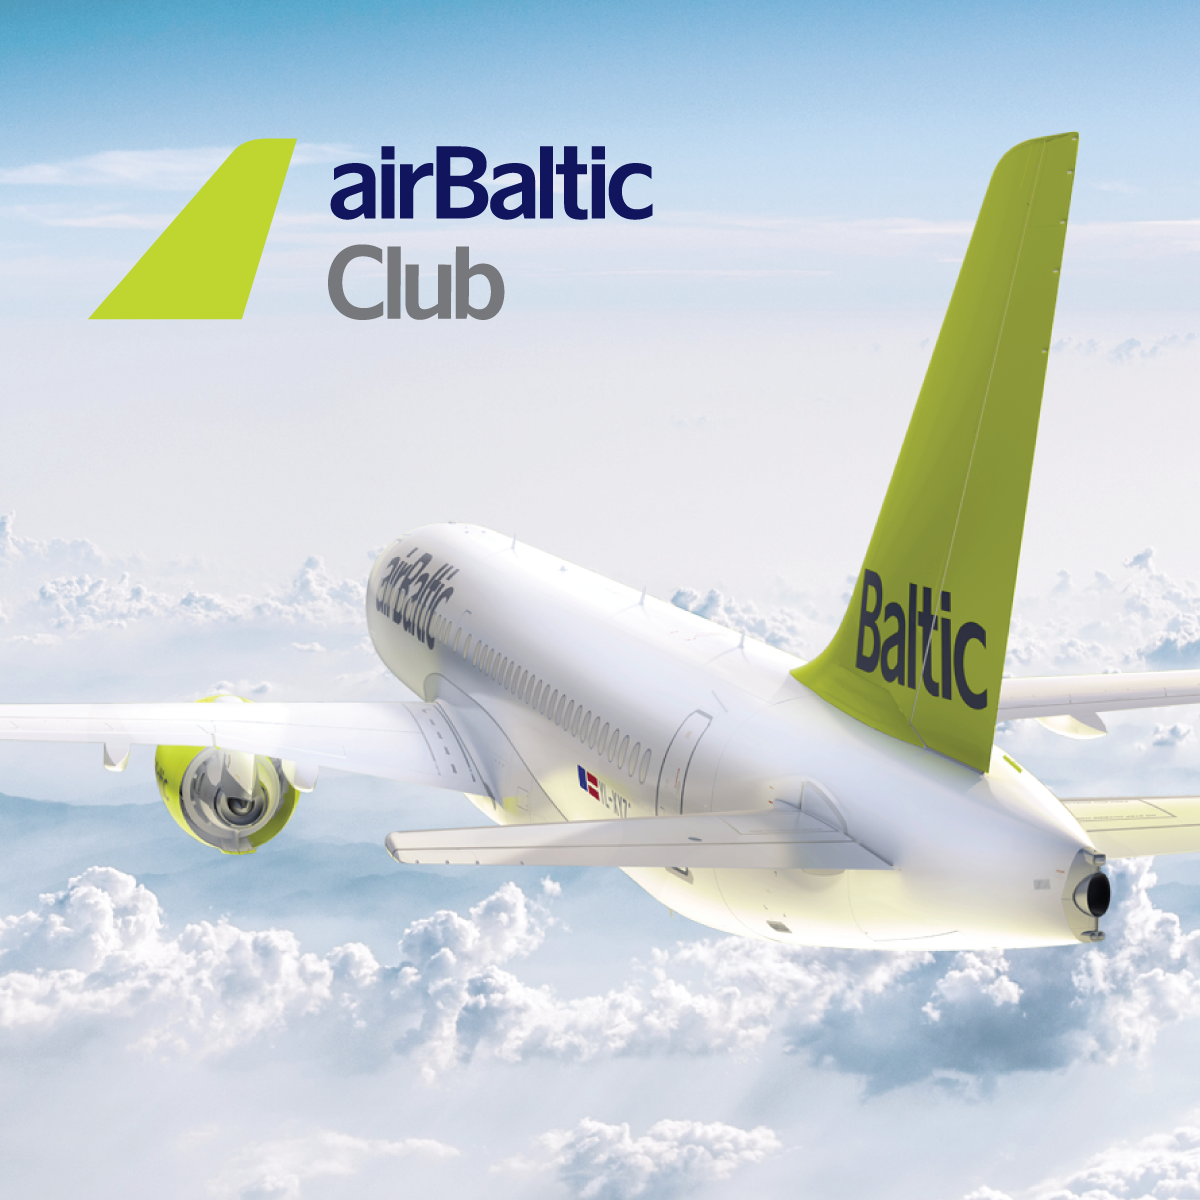 Join airBaltic Club and get valuable rewards image